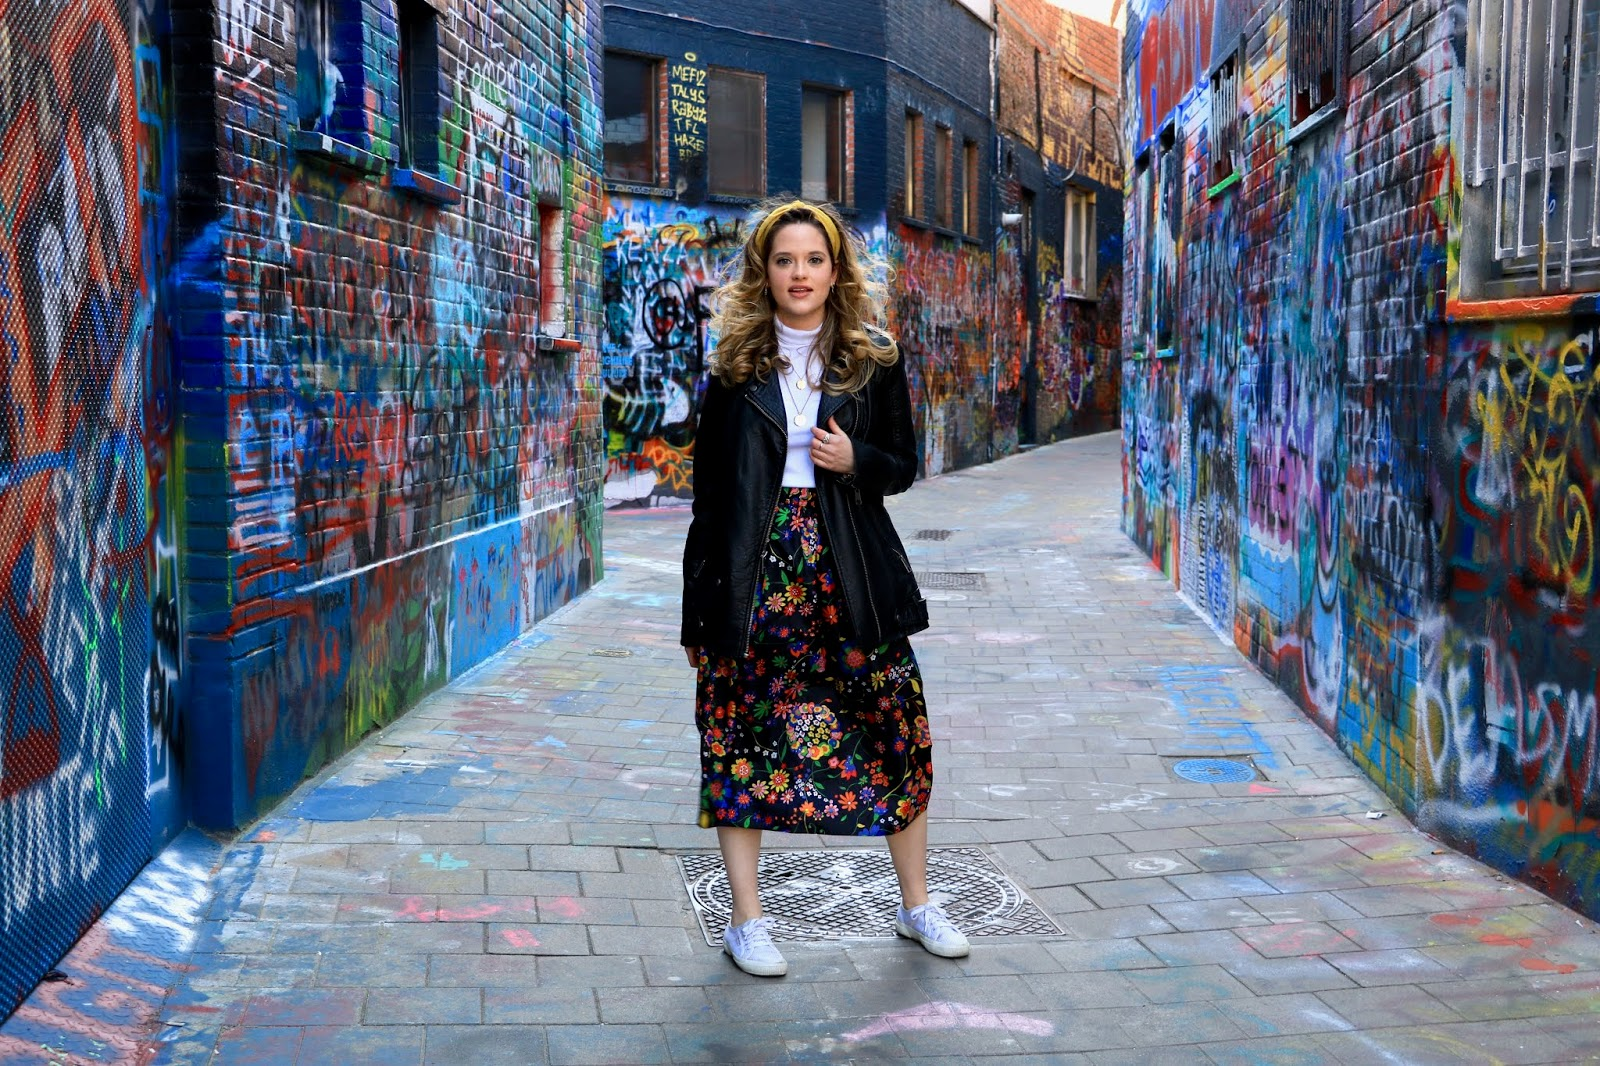 Fashion blogger Kathleen Harper's pics on Graffiti Street in Ghent, Belgium